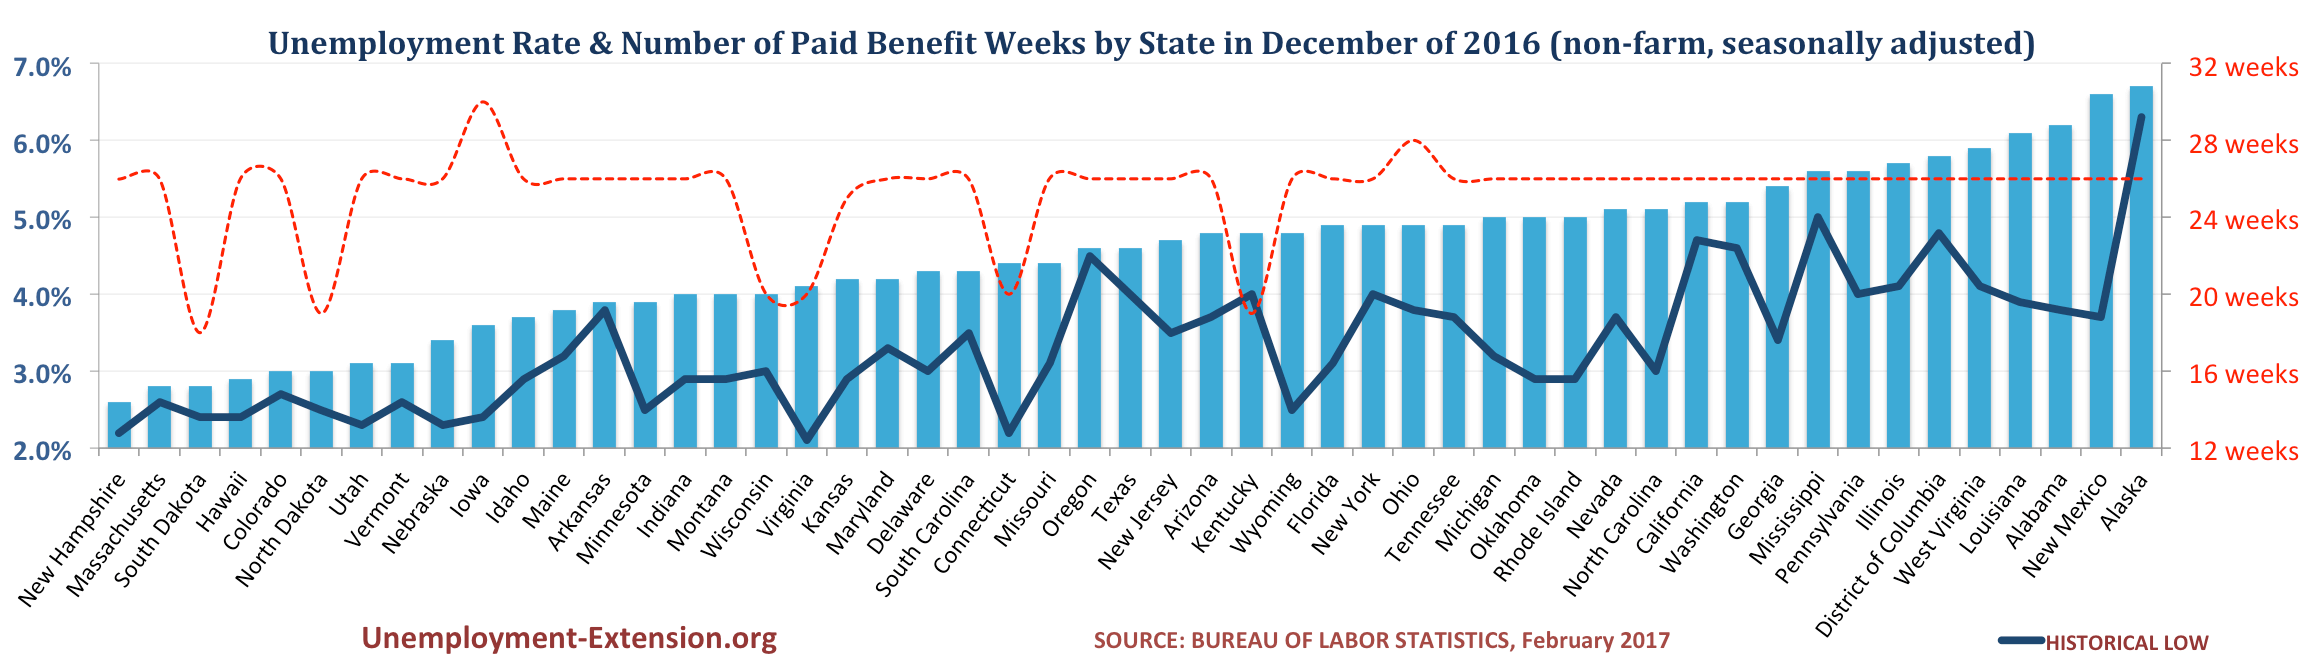 Unemployment Rate and Number of Paid Unemployment Benefit weeks by State (non-farm, seasonally adjusted) in November of 2016